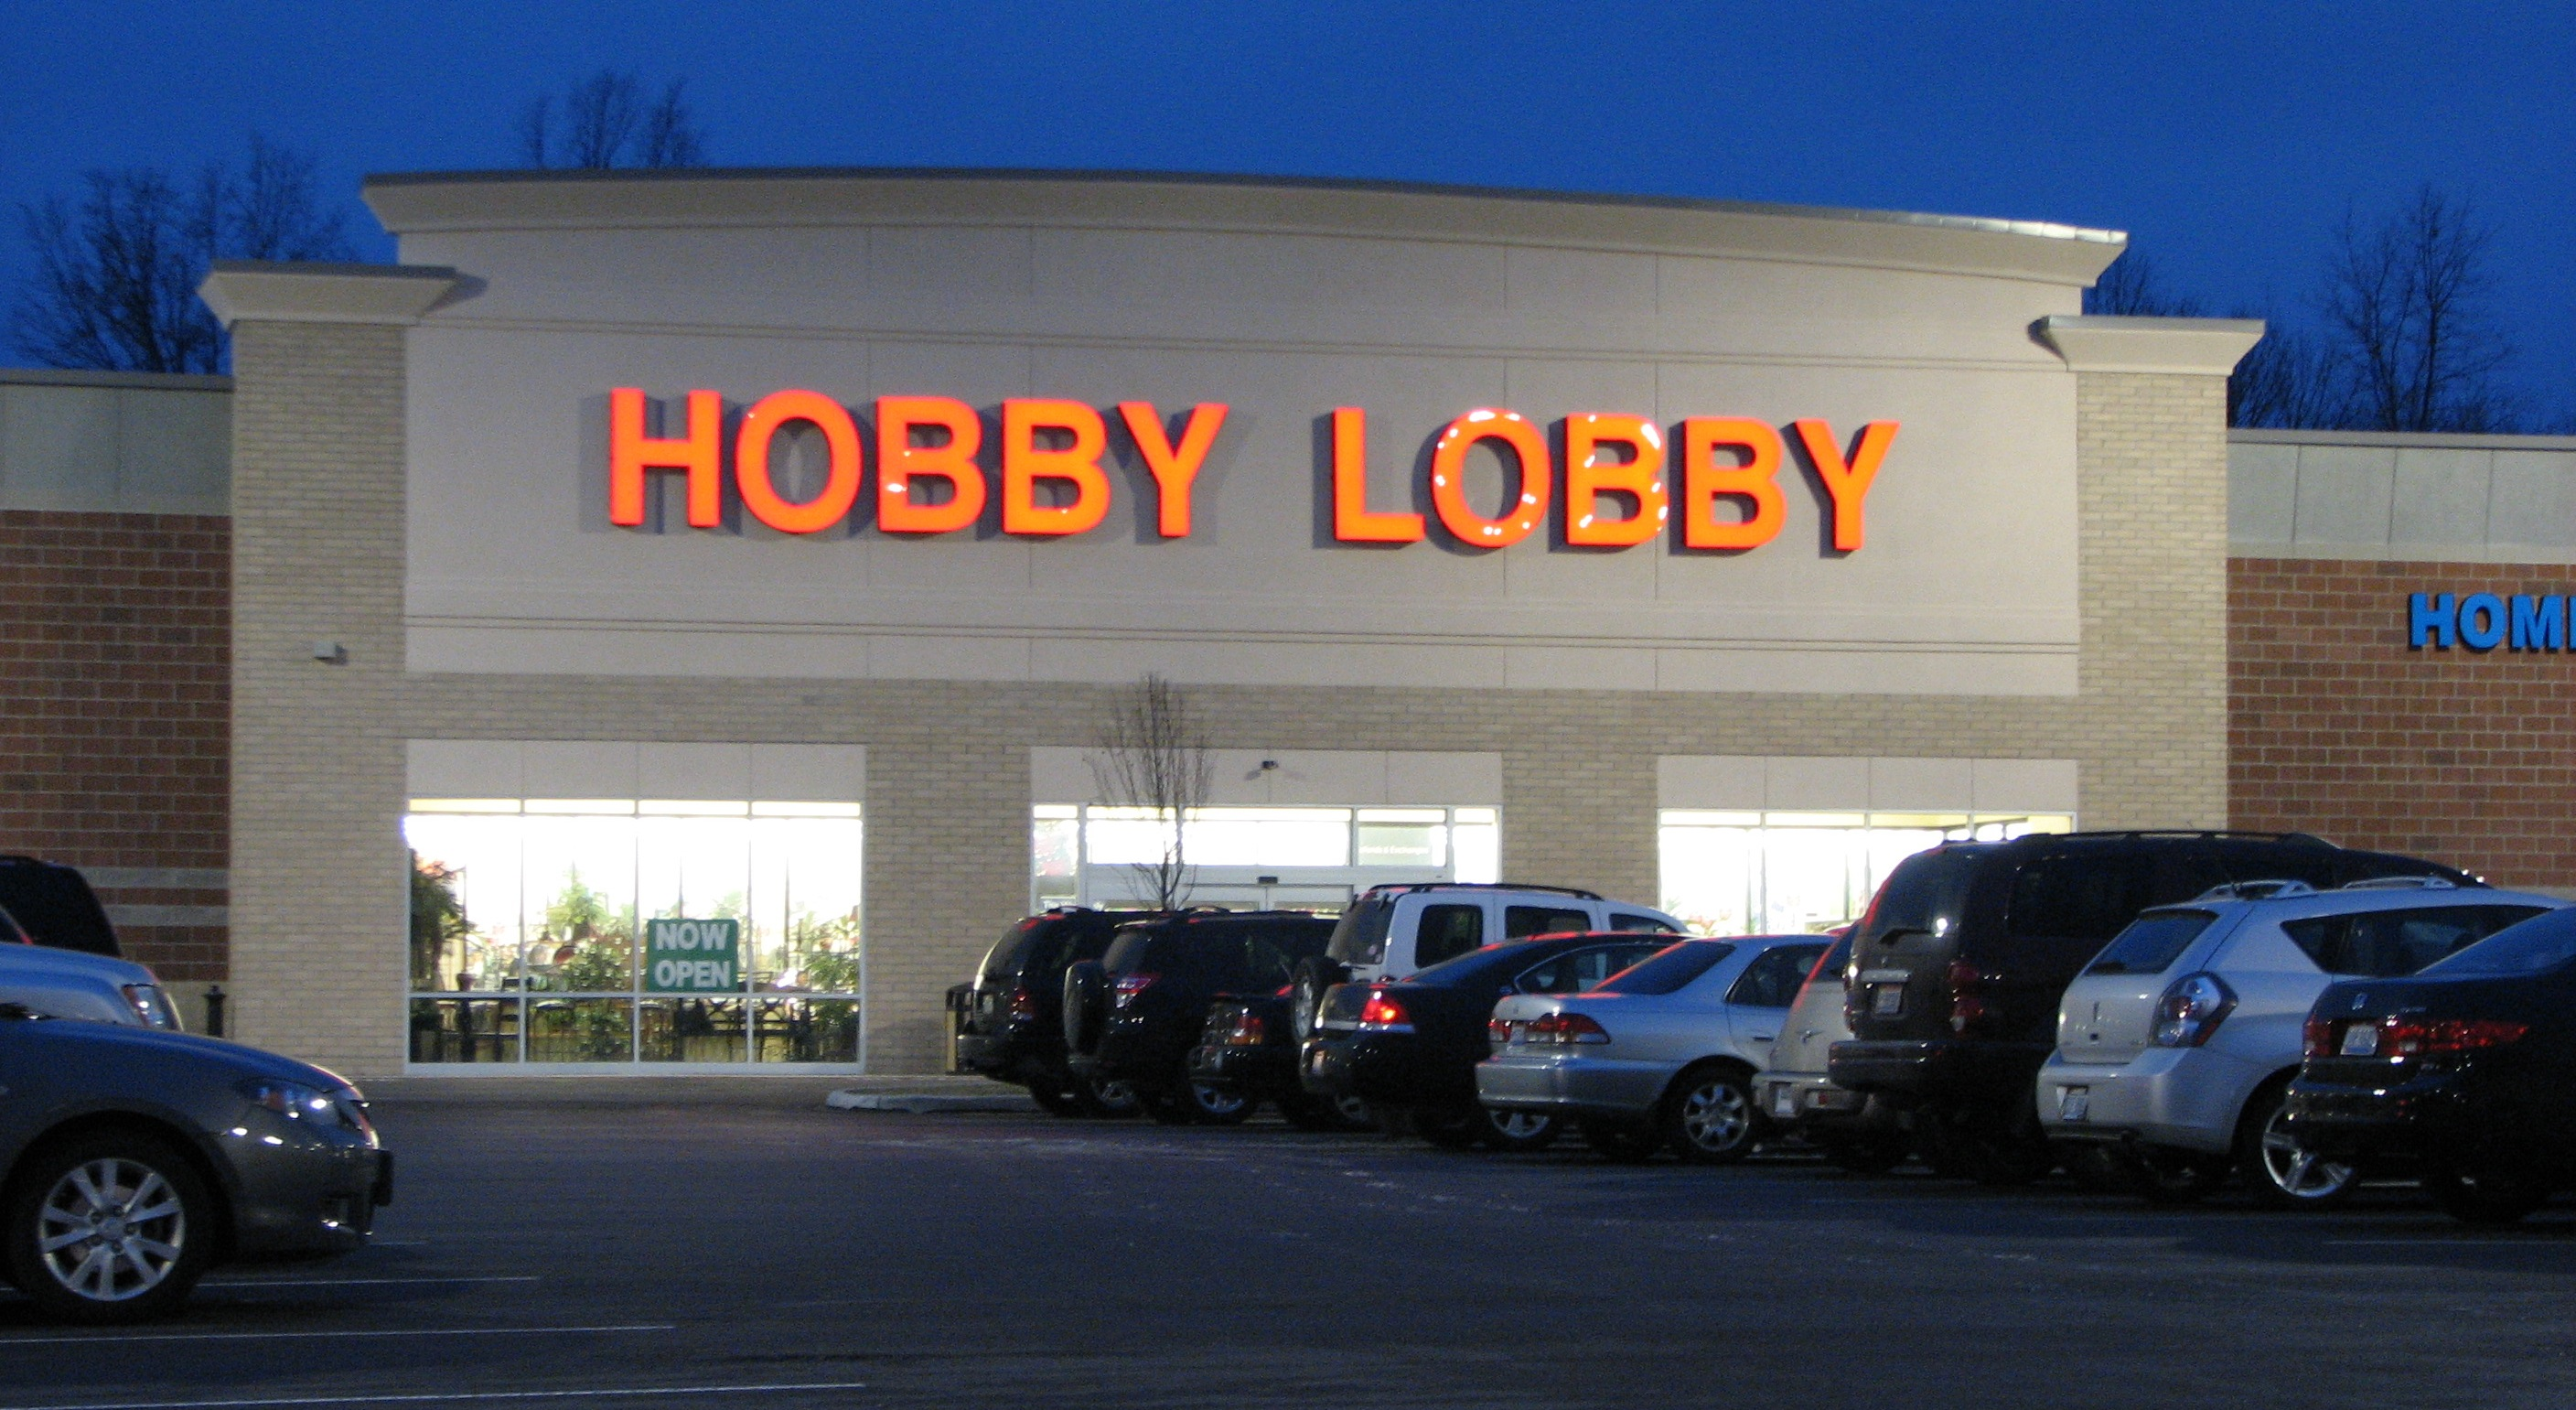 FROM MONTCO: Hobby Lobby Stores Prepares for Opening in King